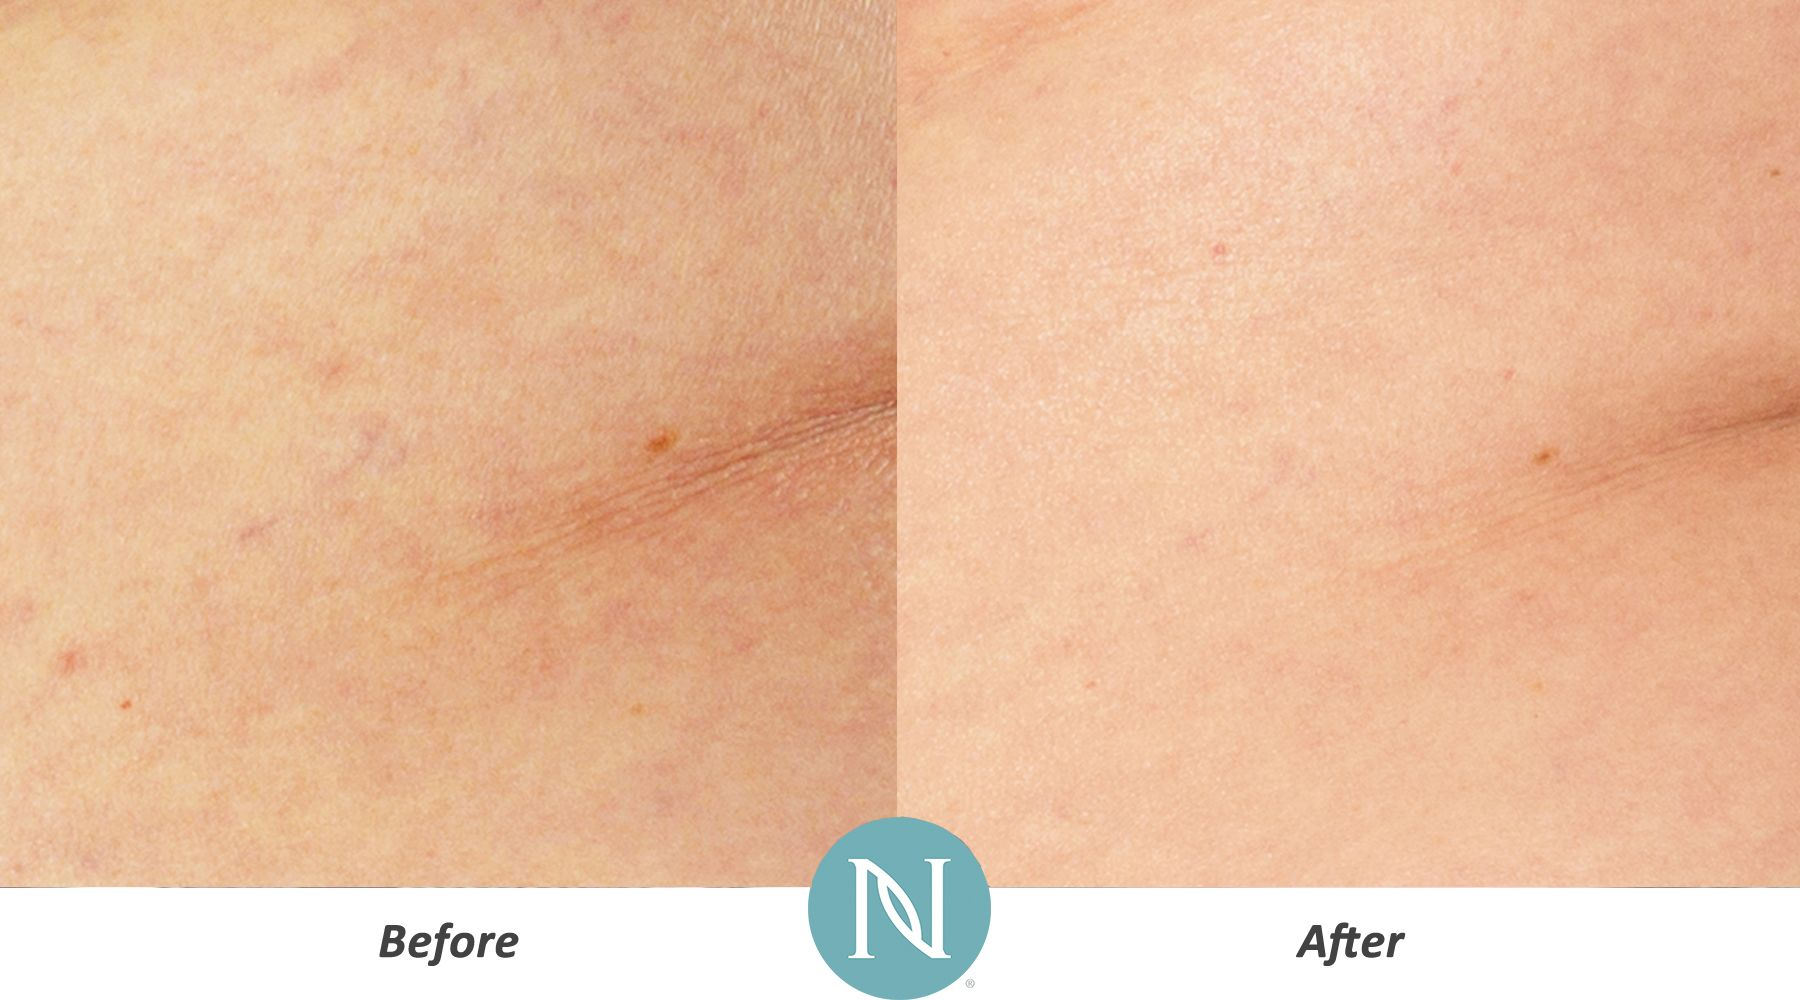 A product that helps smooth and tighten skin for a more toned appearance? Hello, Nerium Firming Body Contour Cream, Optimera Formula! http://MarkKeats.realresults.com/product